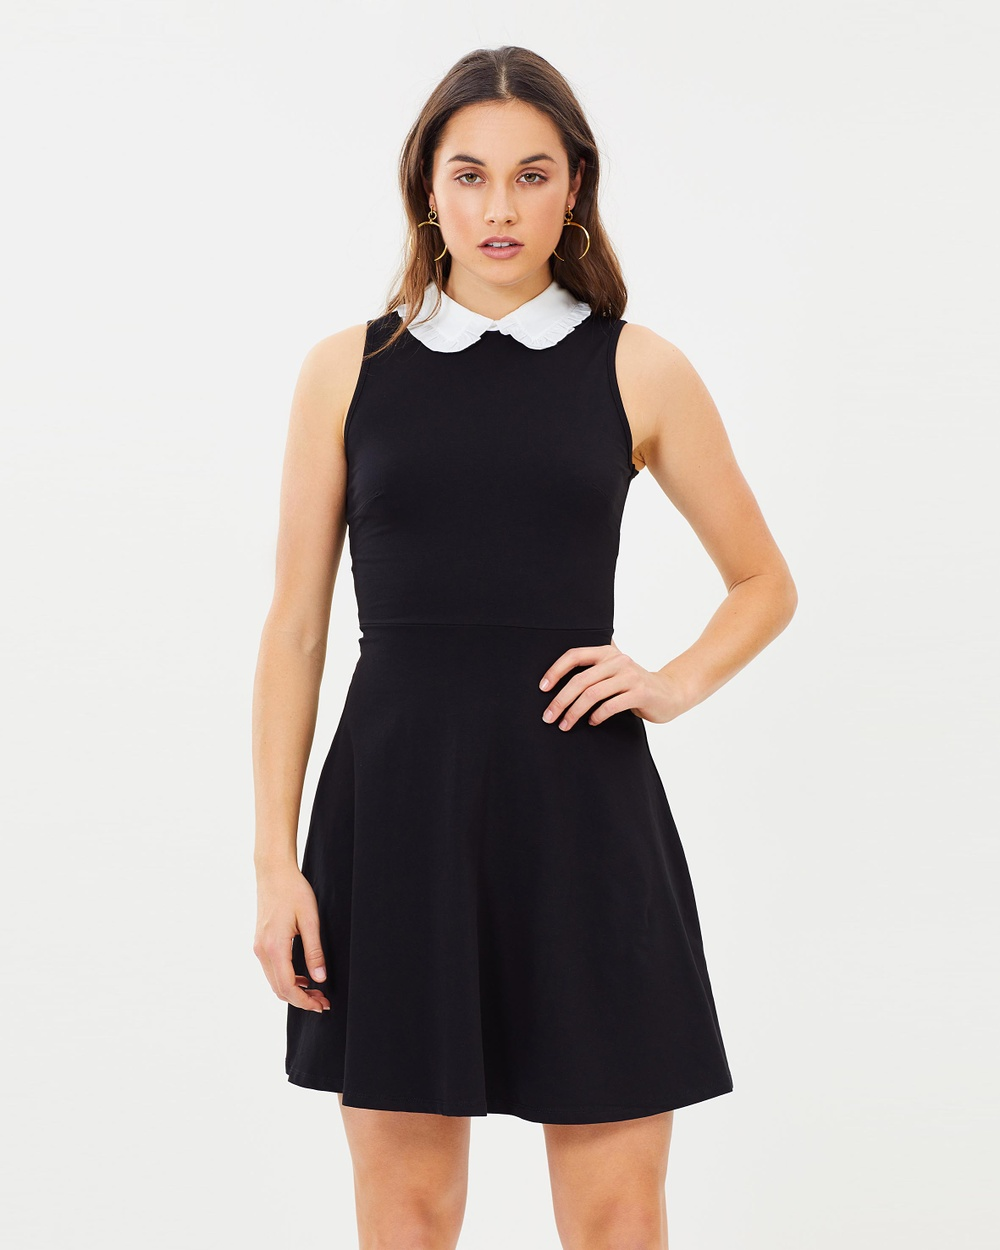 Dorothy Perkins Pointed Collar Skater Dress Dresses Black Pointed Collar Skater Dress